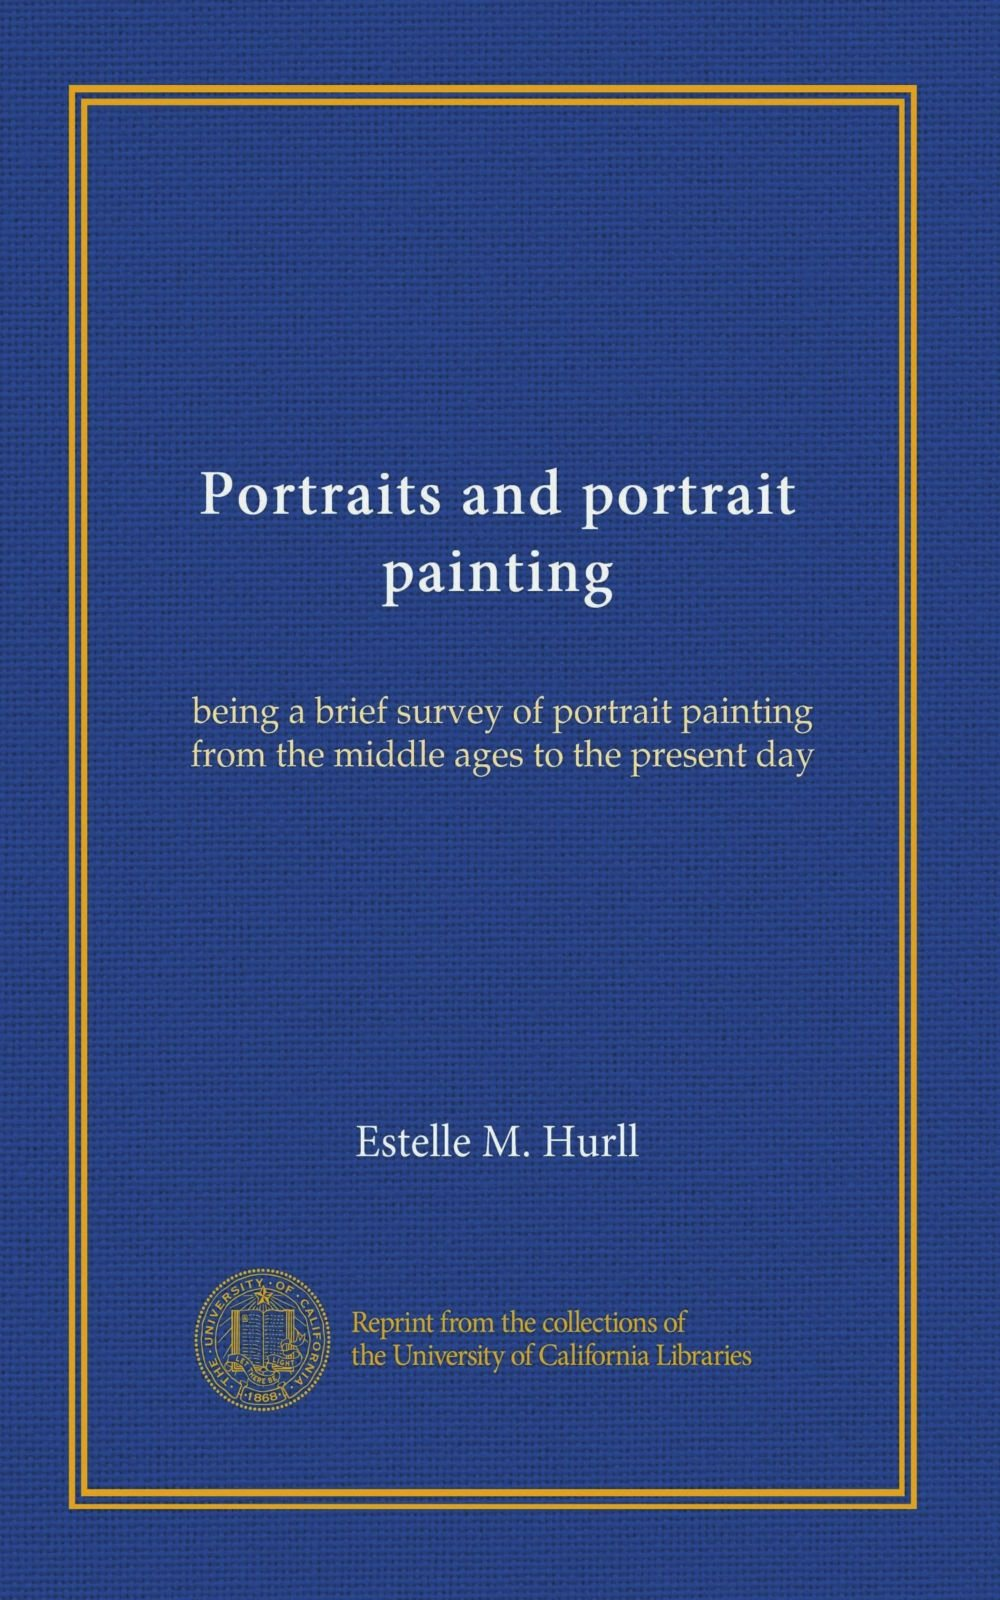 Portraits and portrait painting: being a brief survey of portrait painting from the middle ages to the present day